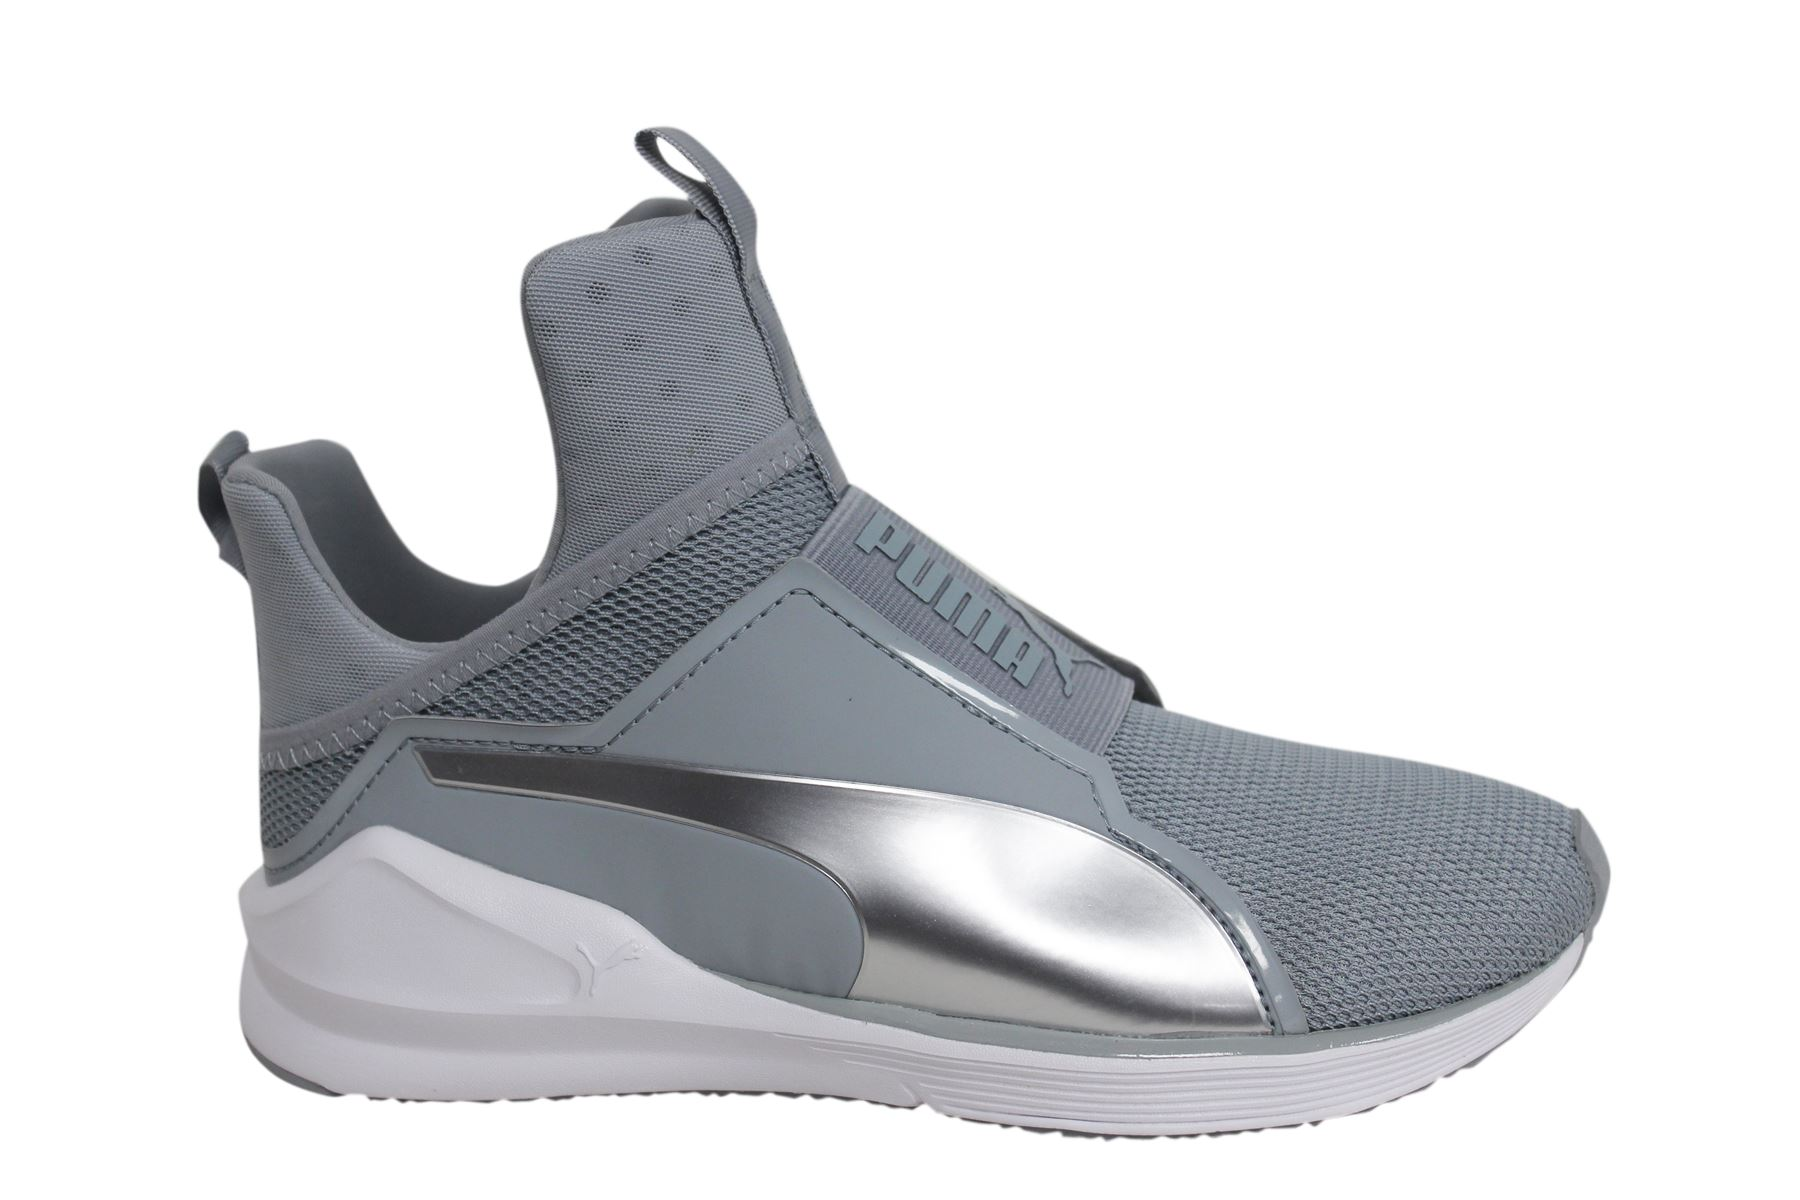 huge selection of 00fd9 2a1b0 Details about Puma Fierce Core Womens Slip On Grey Mesh Dance Trainers  188977 03 M13